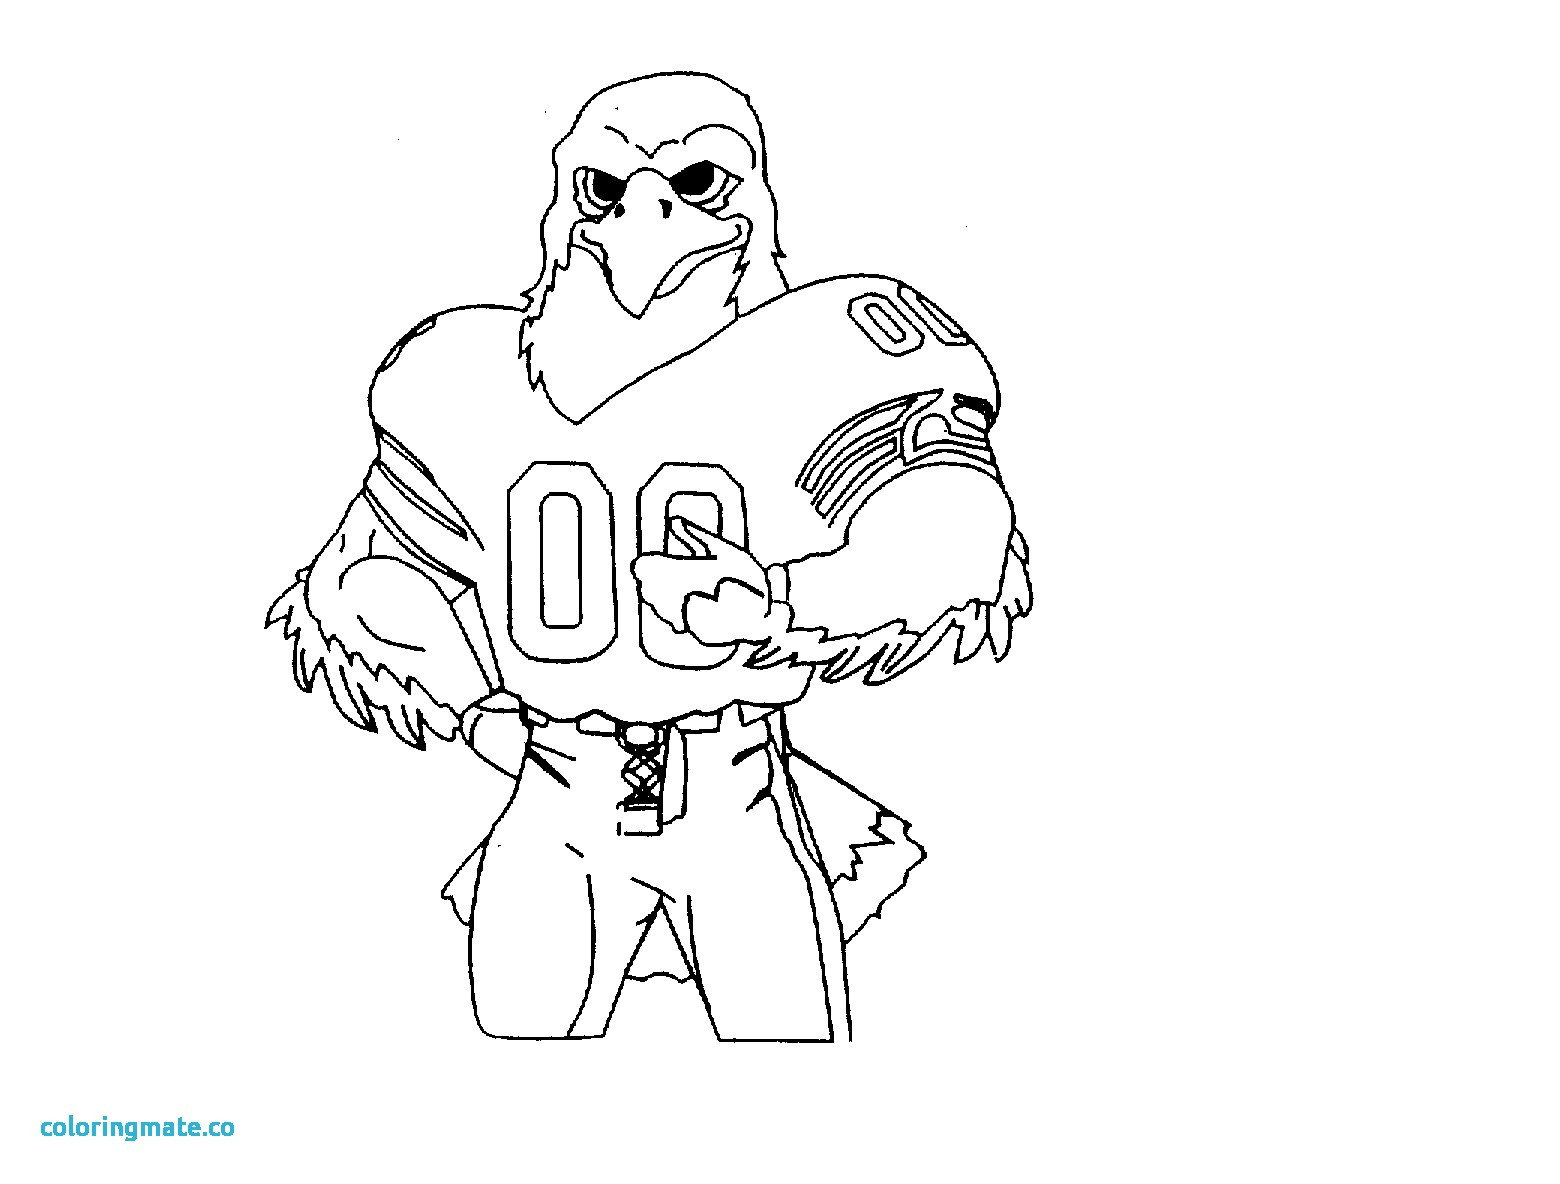 1560x1184 Seattle Seahawks Logo Coloring Page Free Printable Pages Within